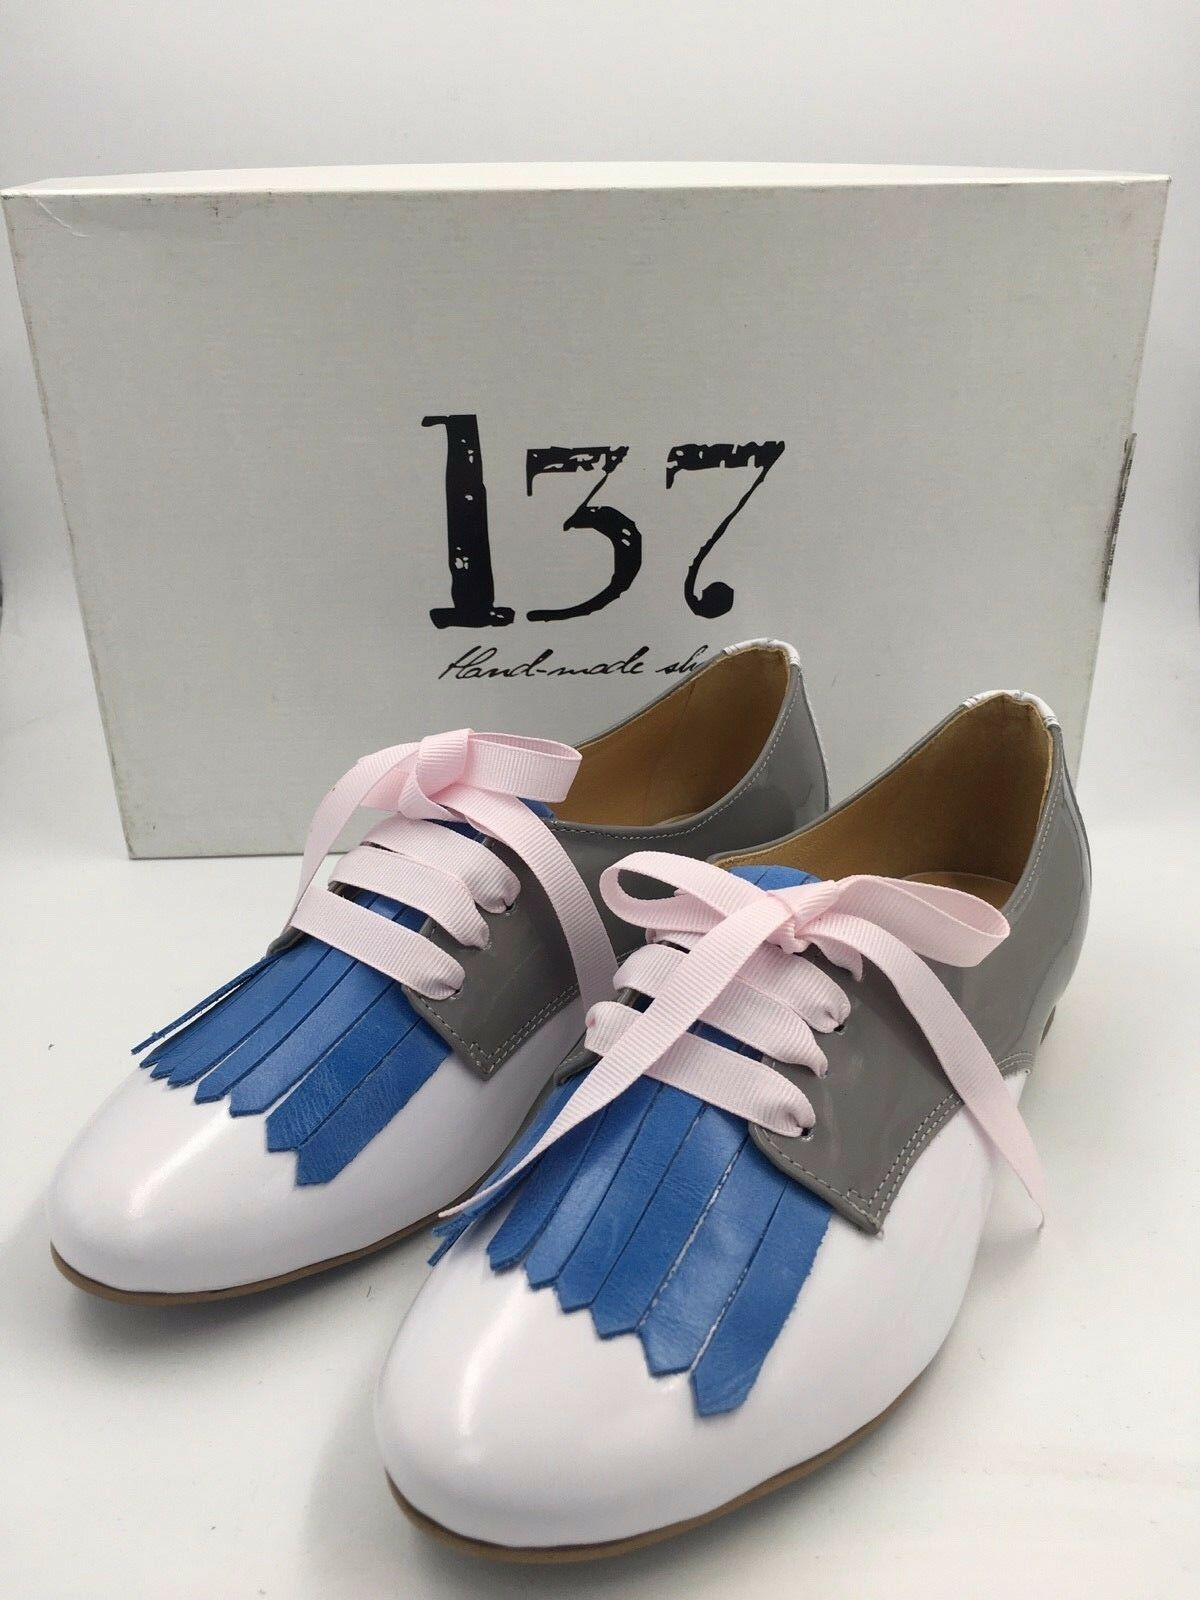 L37 MING PATENT LEATHER WHITE GREY blueE TASSEL LACE UP SHOES UK 2.5 EU 35